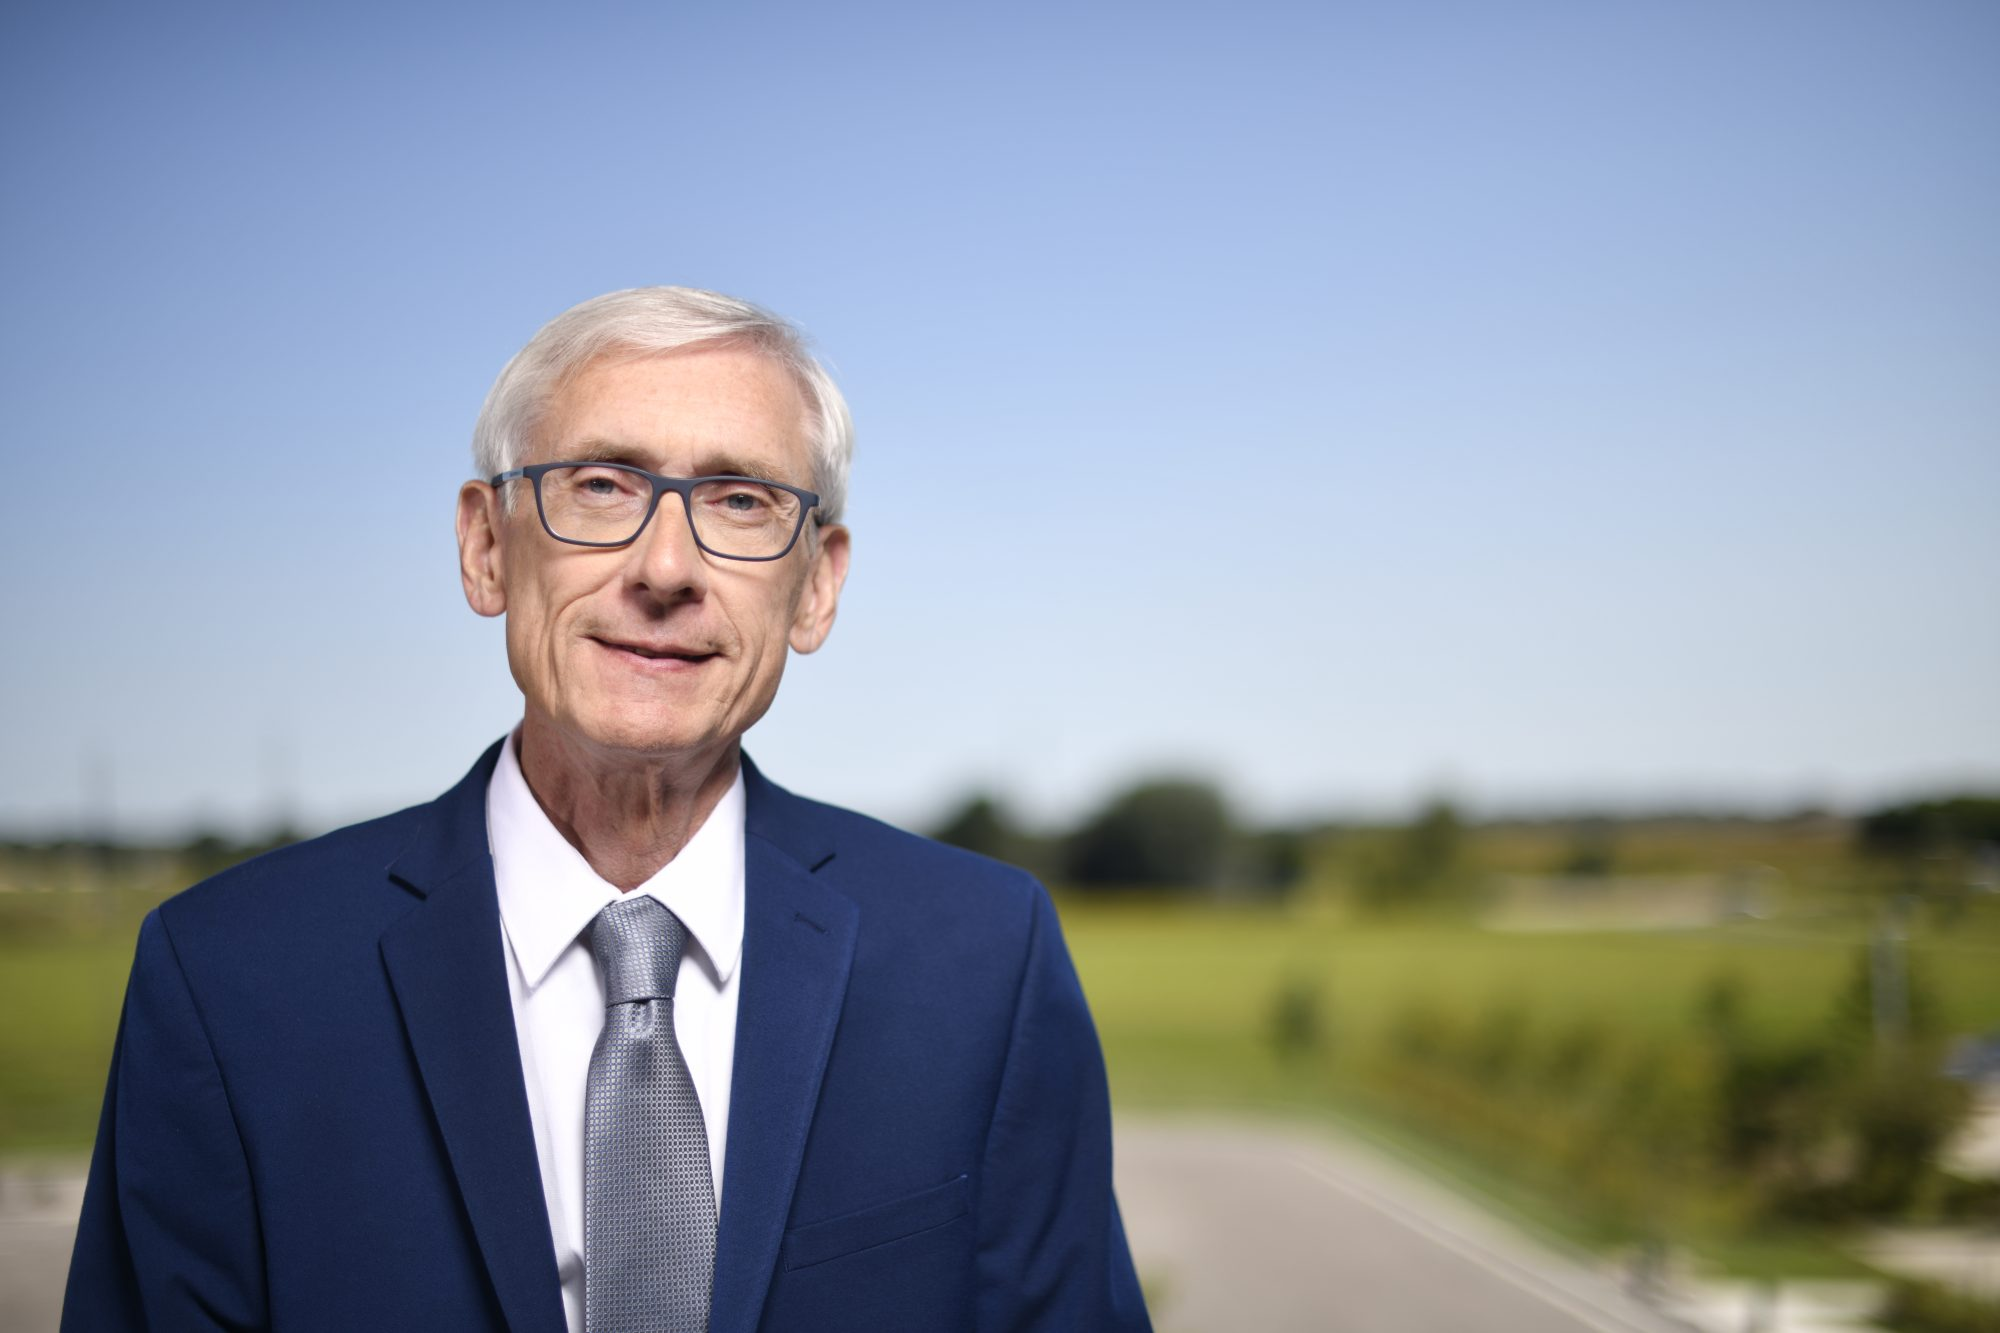 Gov. Evers requests FEMA damage assessments in Milwaukee, Racine, and Kenosha counties